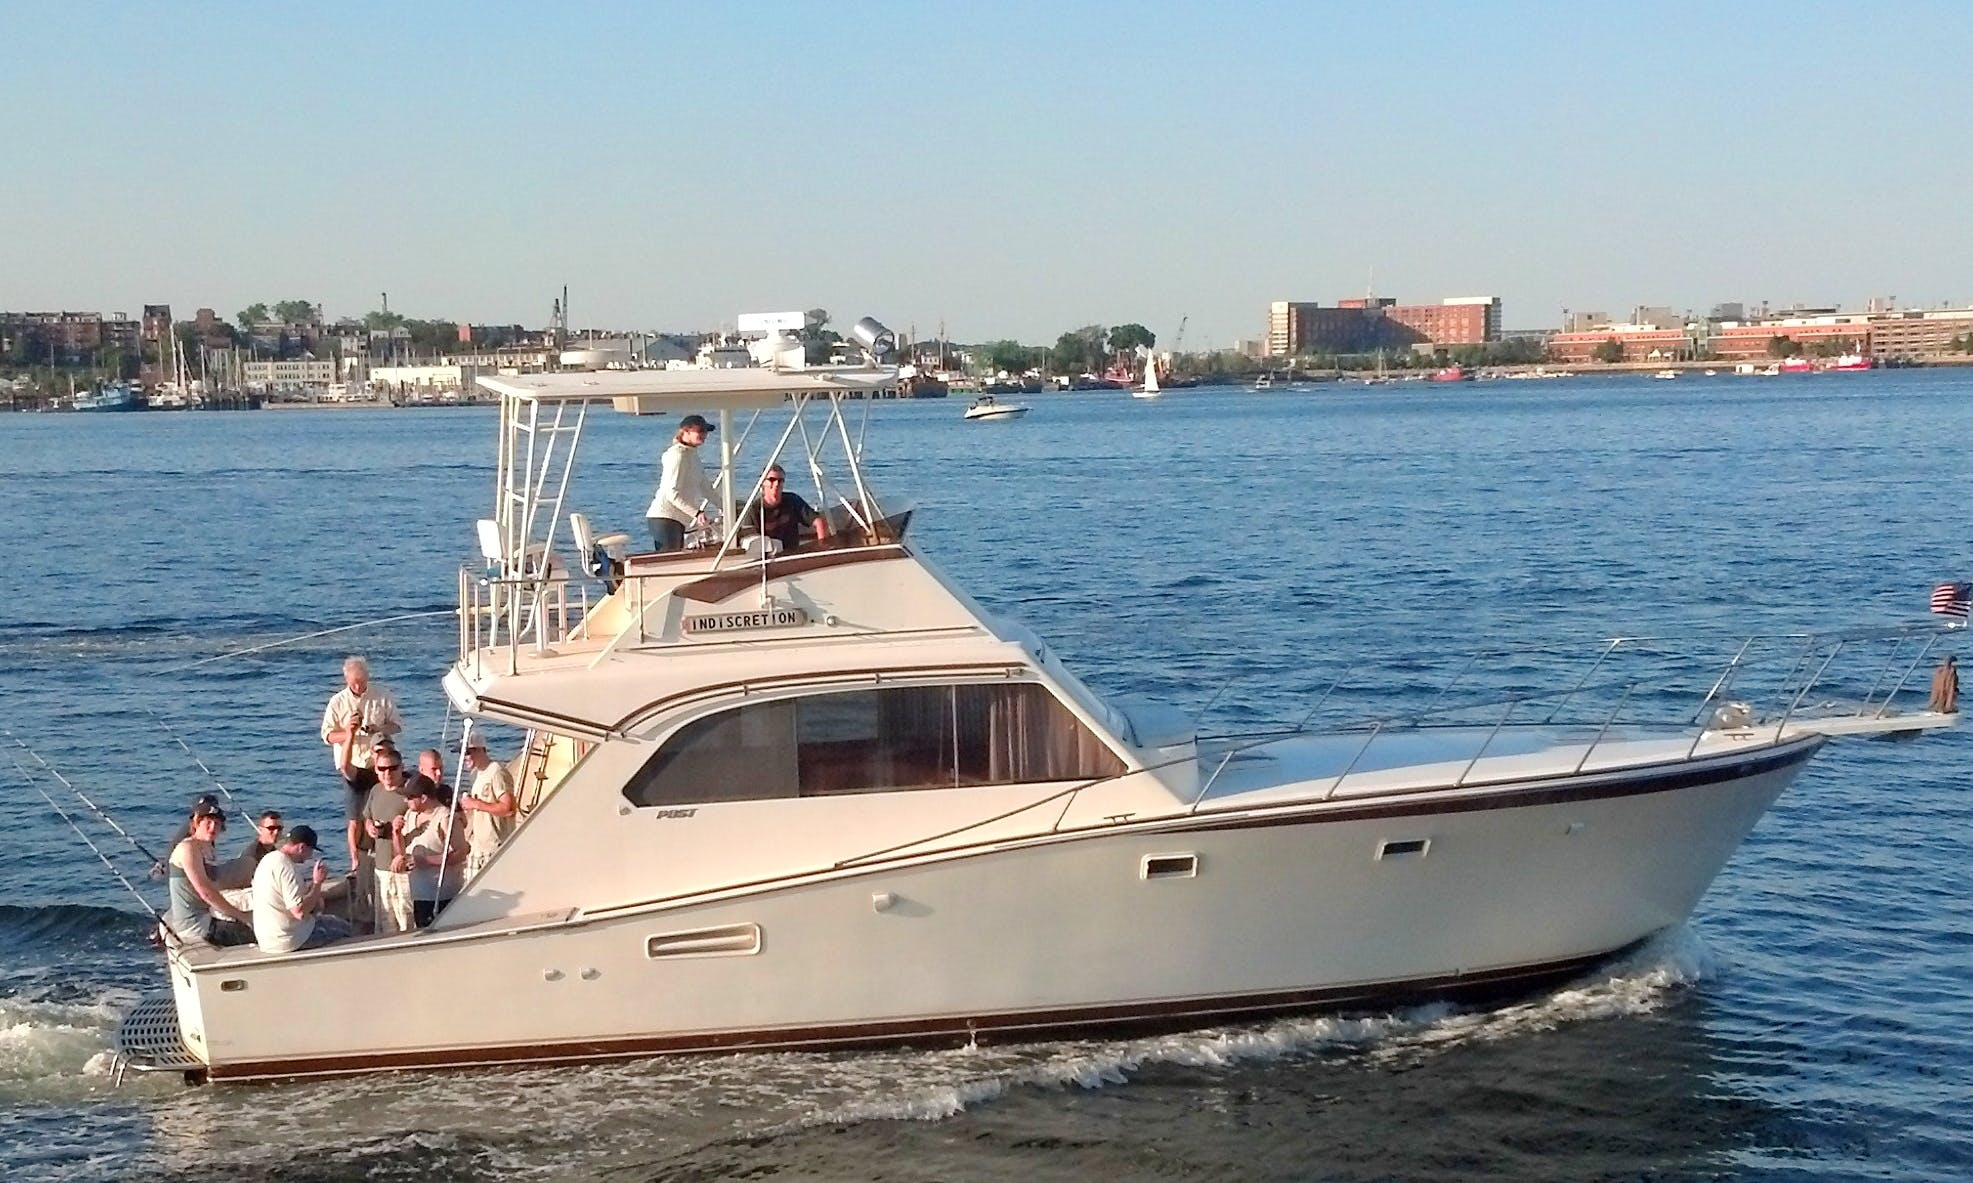 Charter On 42ft 'Indiscretion' Yacht In Boston, Massachusetts